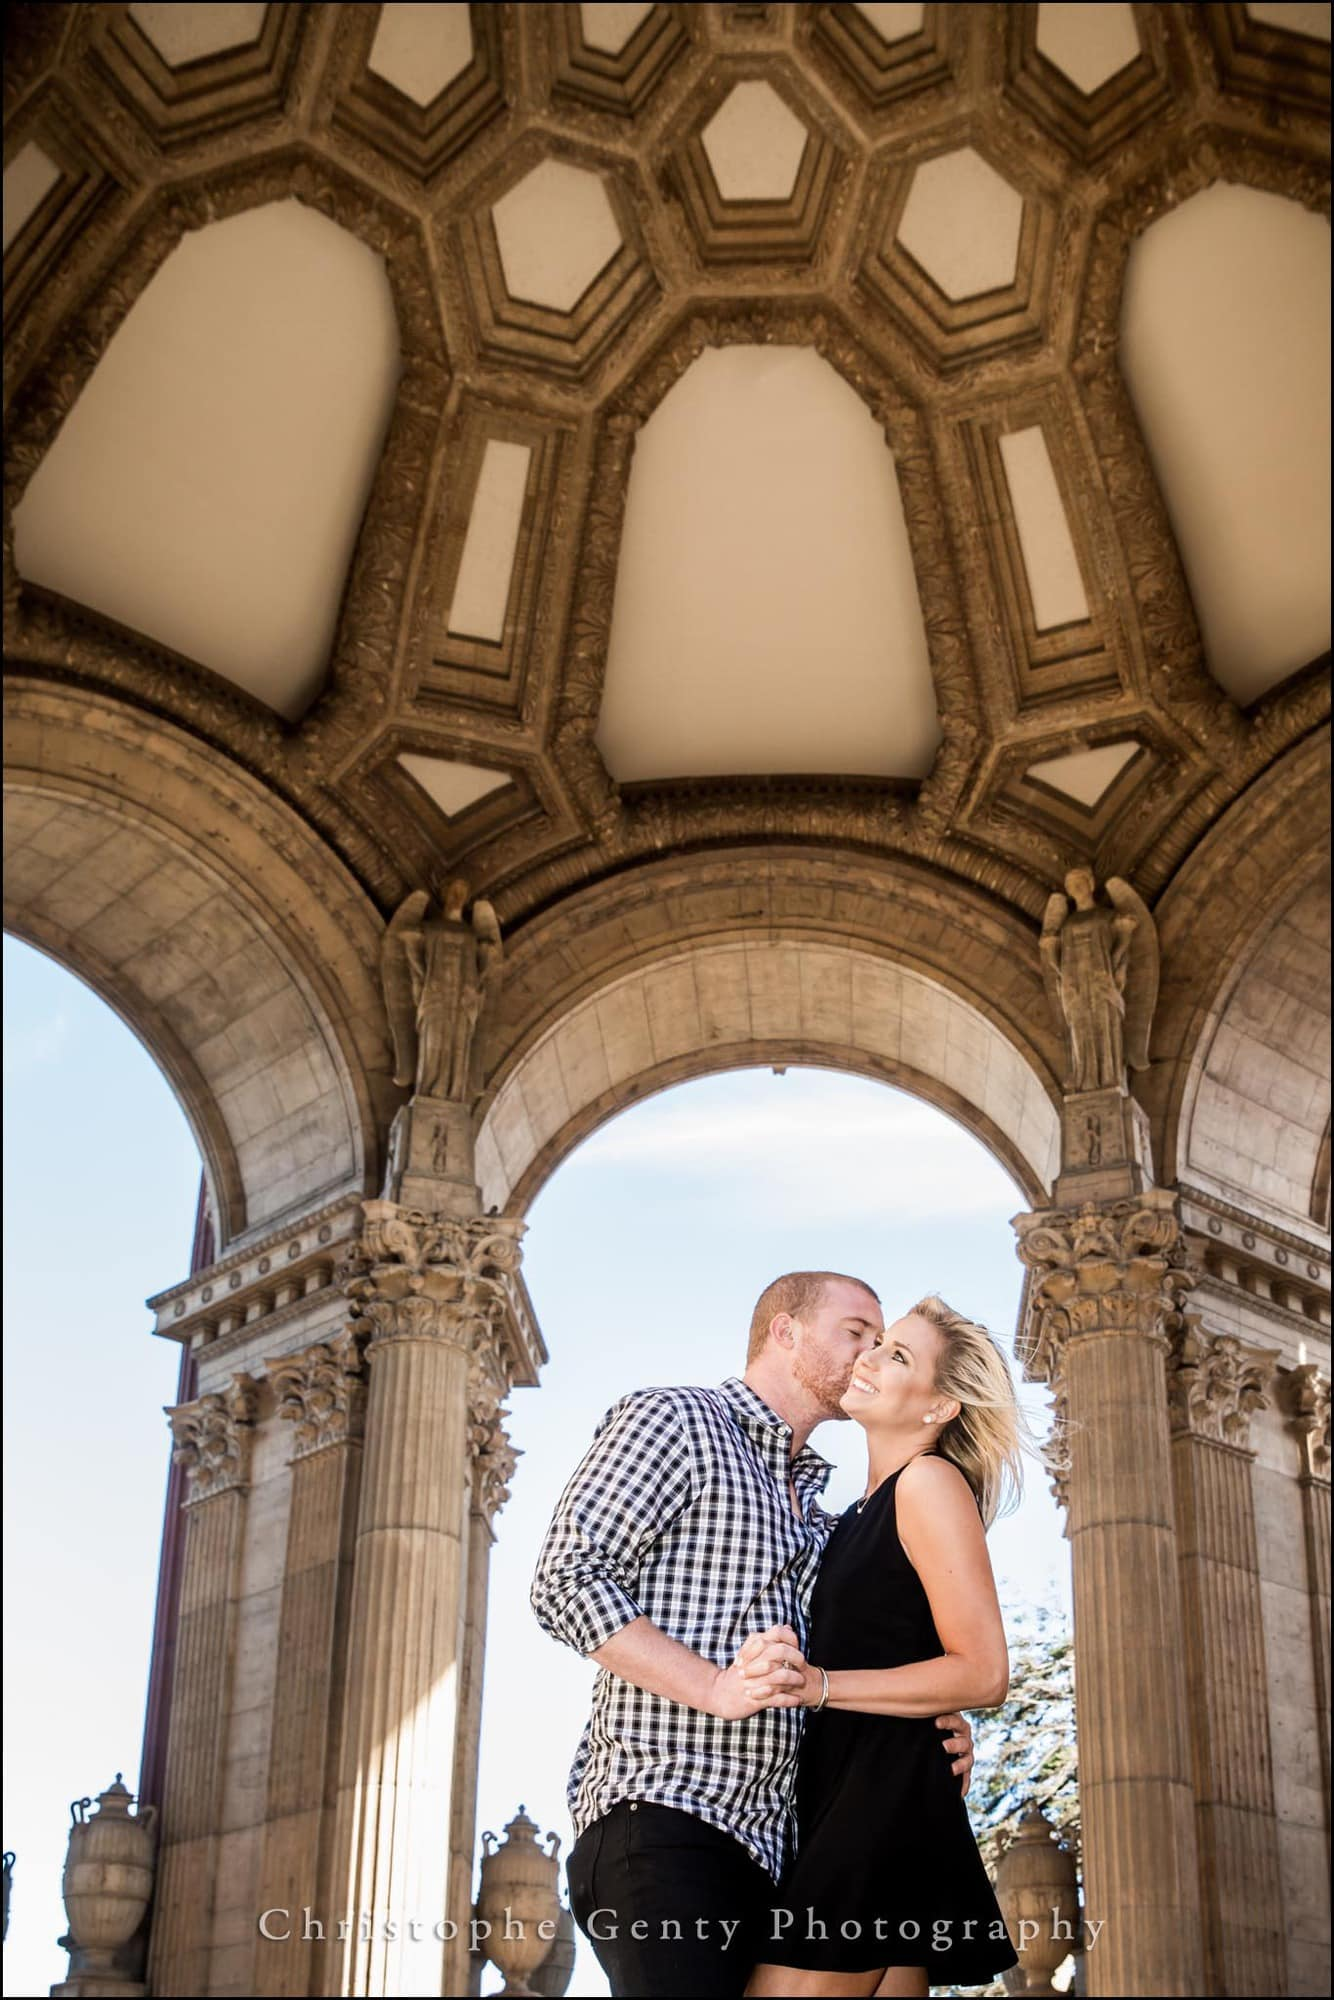 Engagement photography at The Palace of Fine Arts, San Francisco